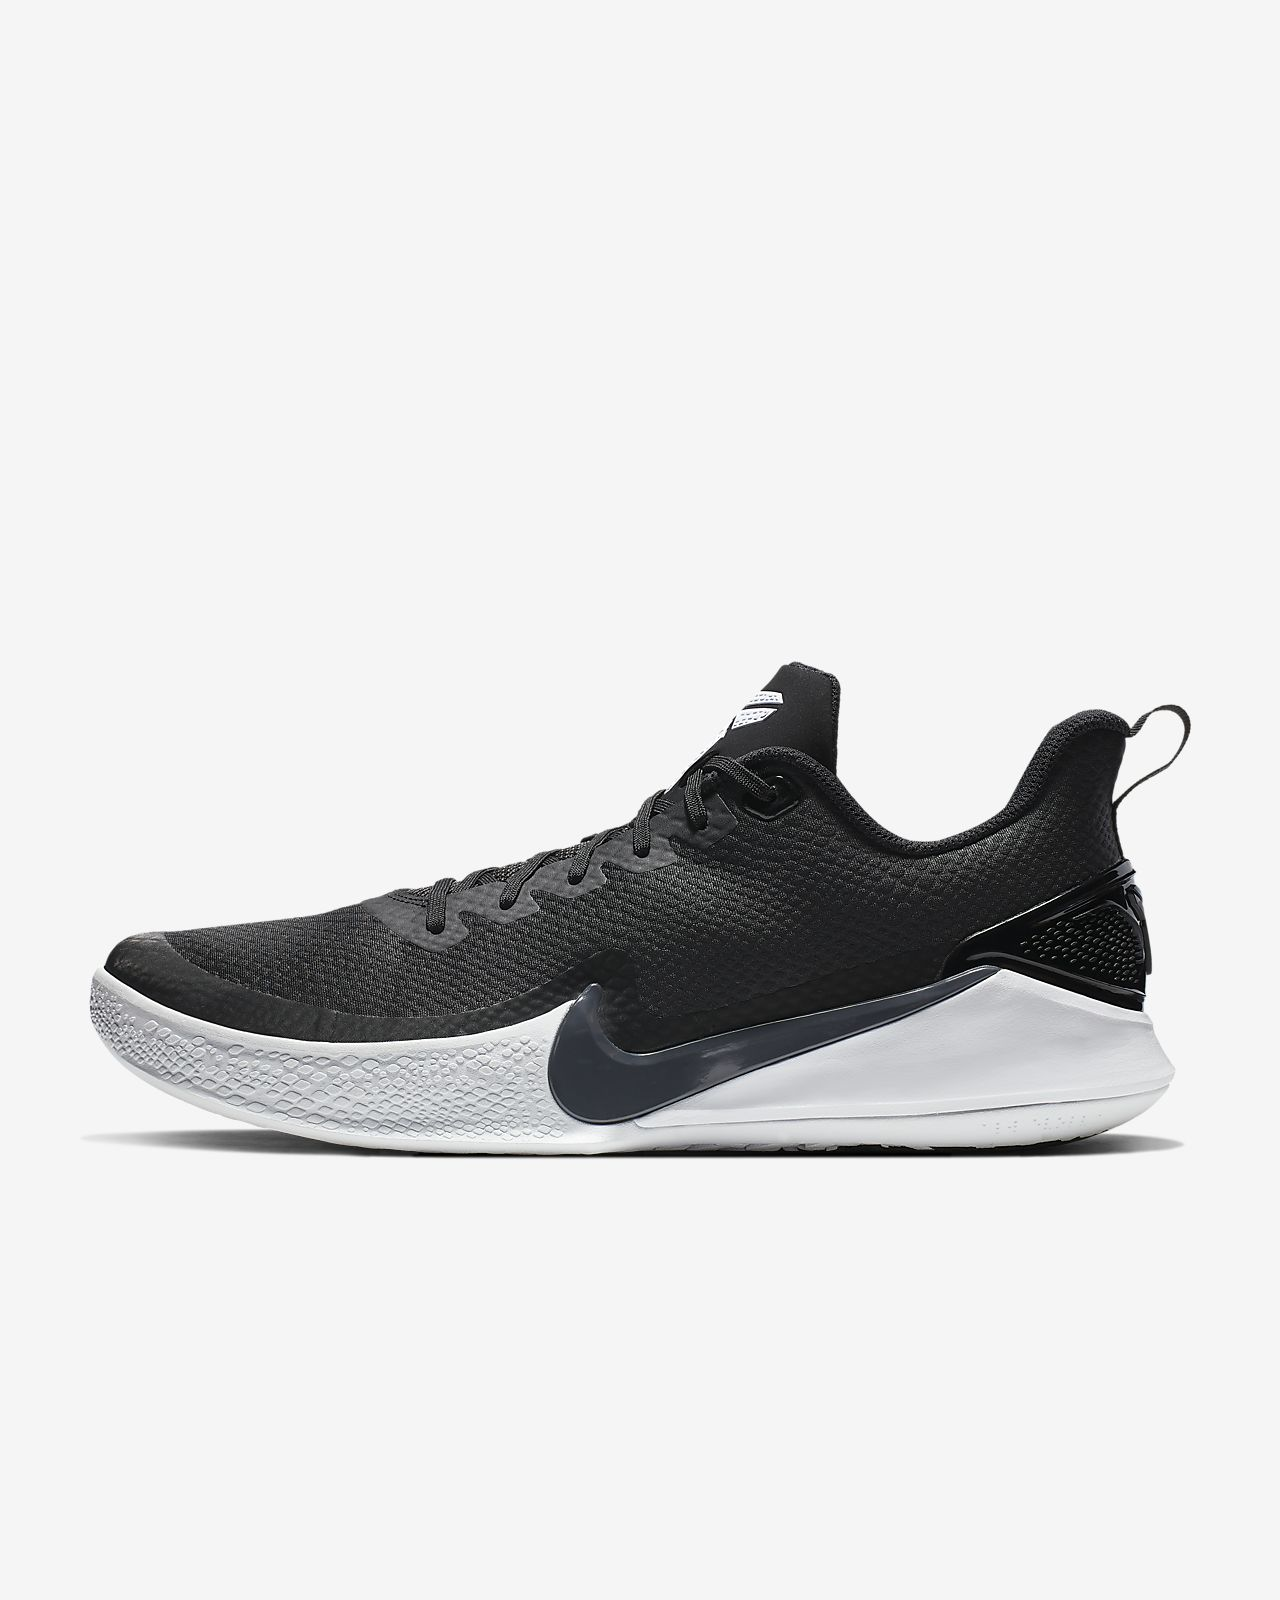 new styles 75238 169fd Low Resolution Chaussure de basketball Mamba Focus Chaussure de basketball  Mamba Focus